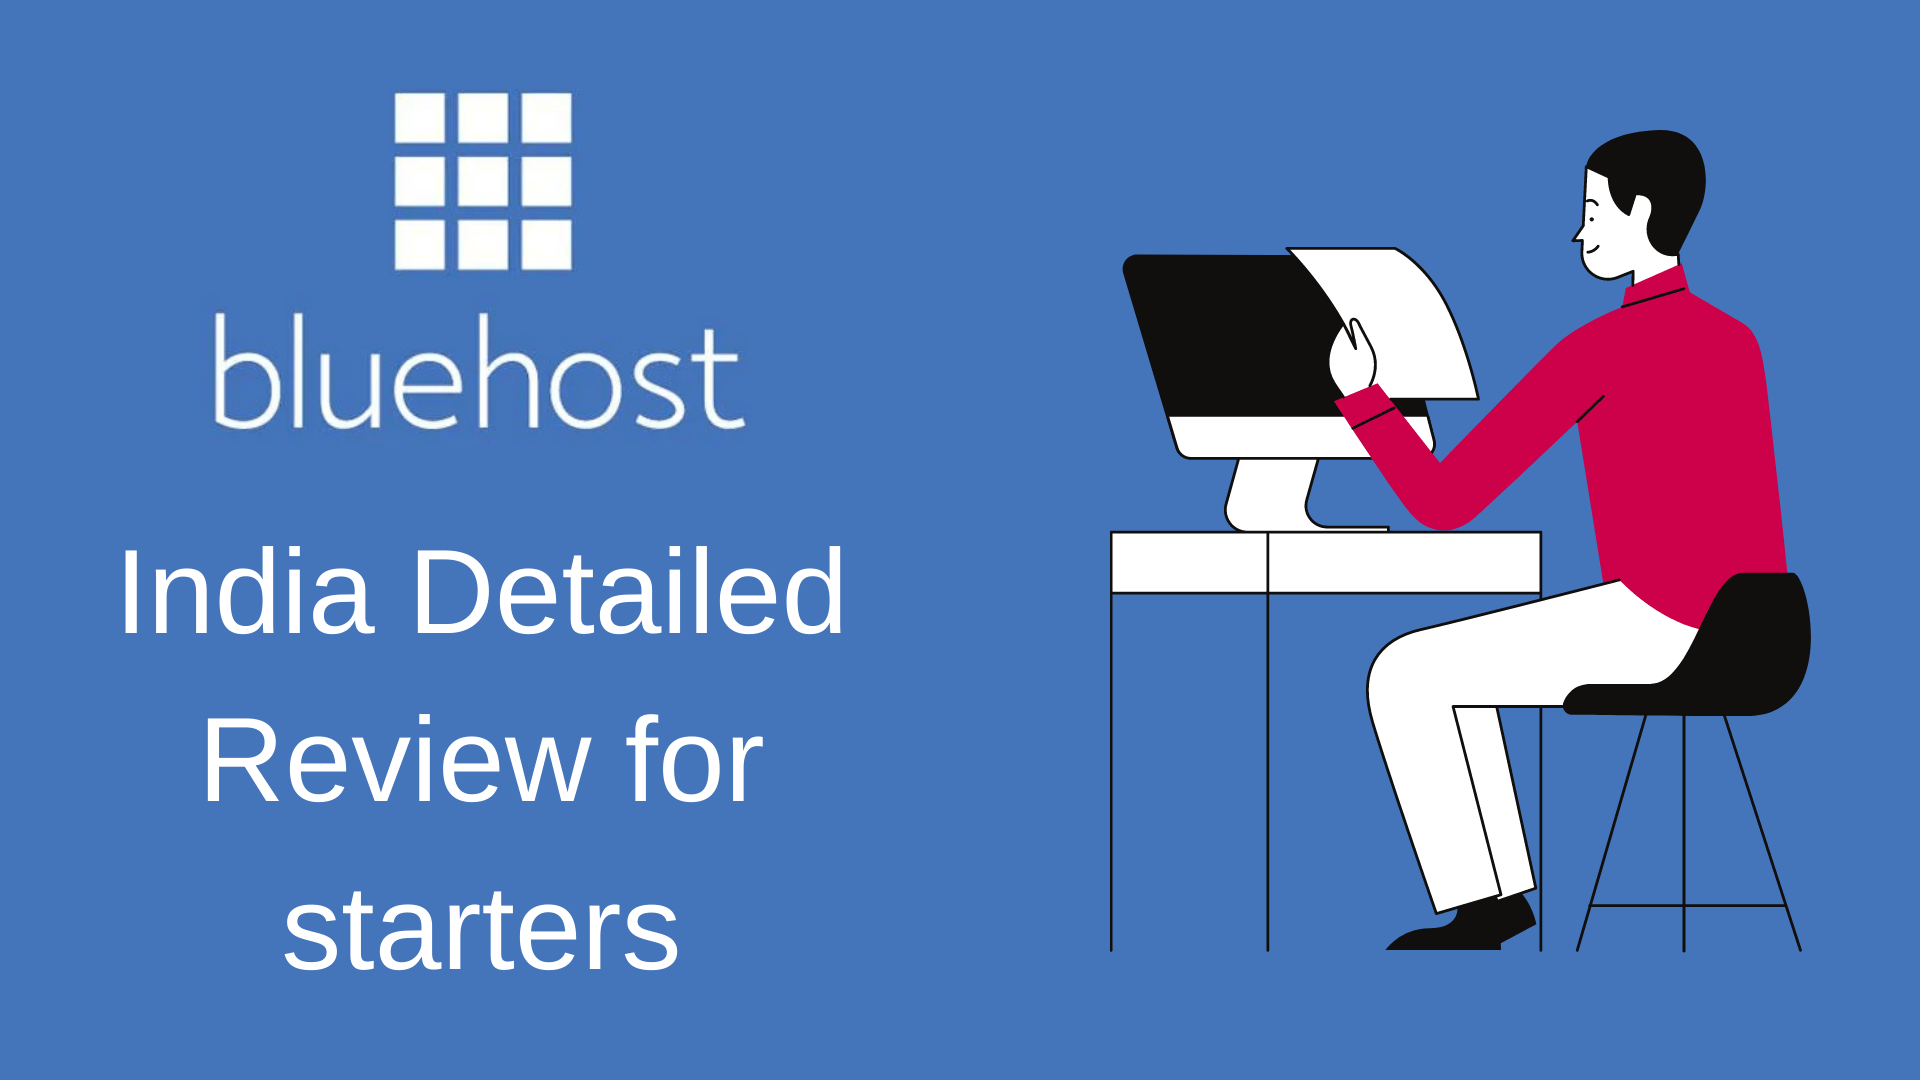 Bluehost India Review 2021: Don't Buy Before Reading This